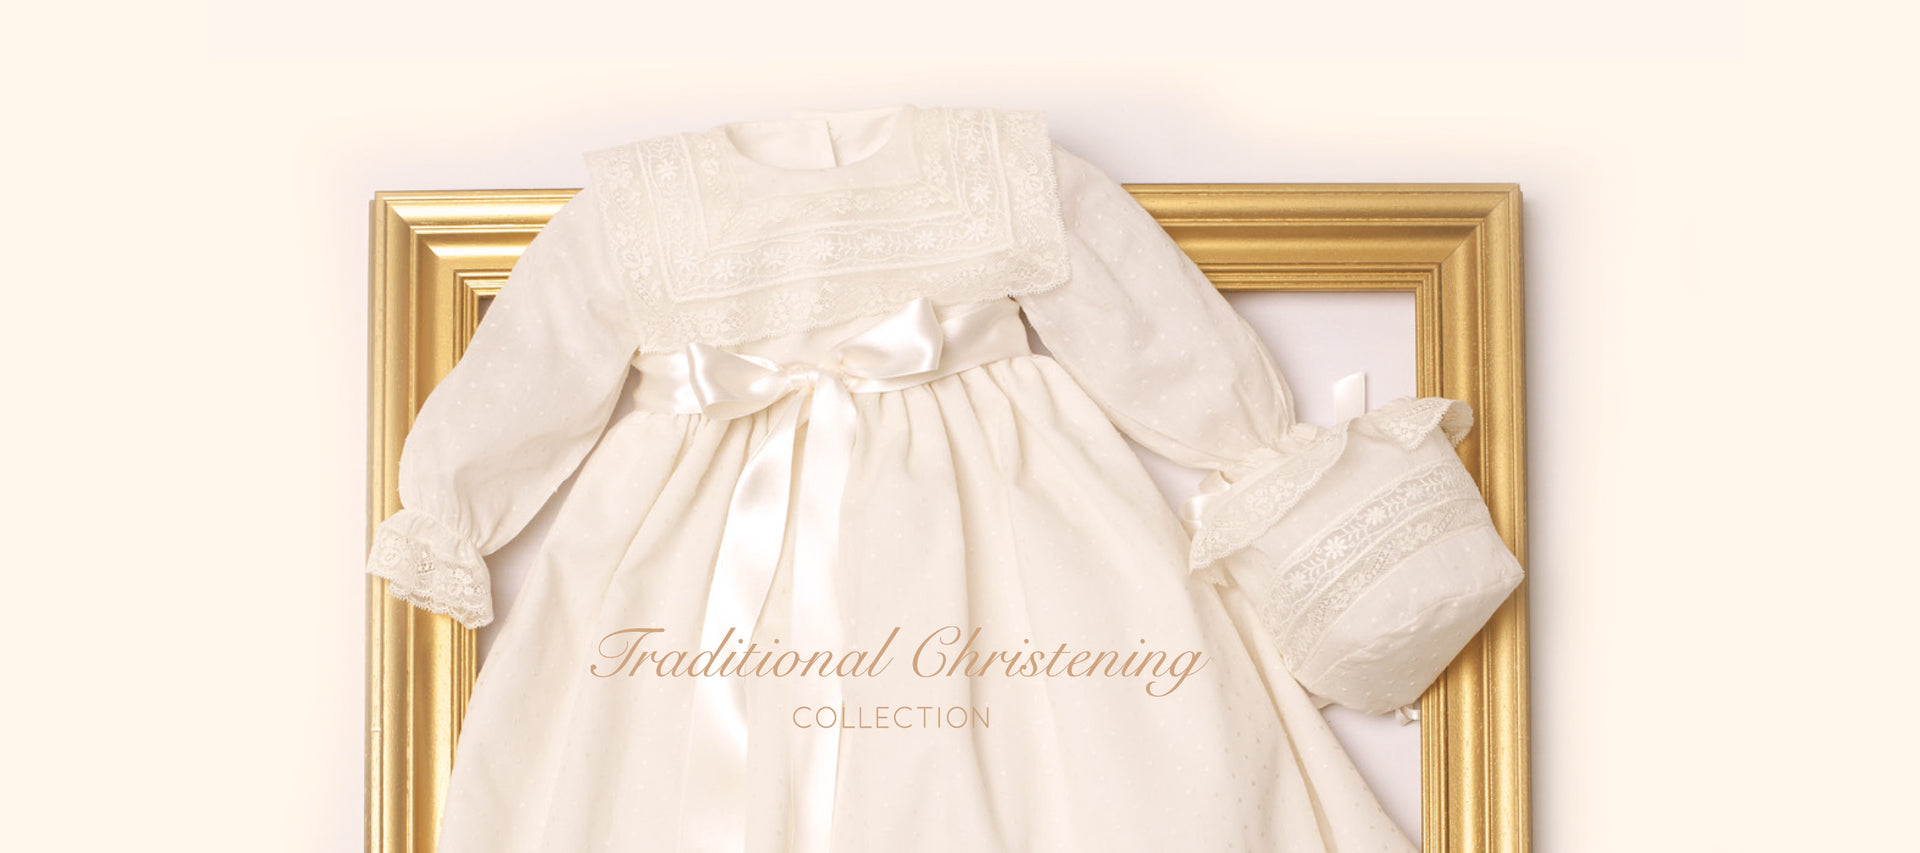 2d9898cf02da Traditional Children s Clothing